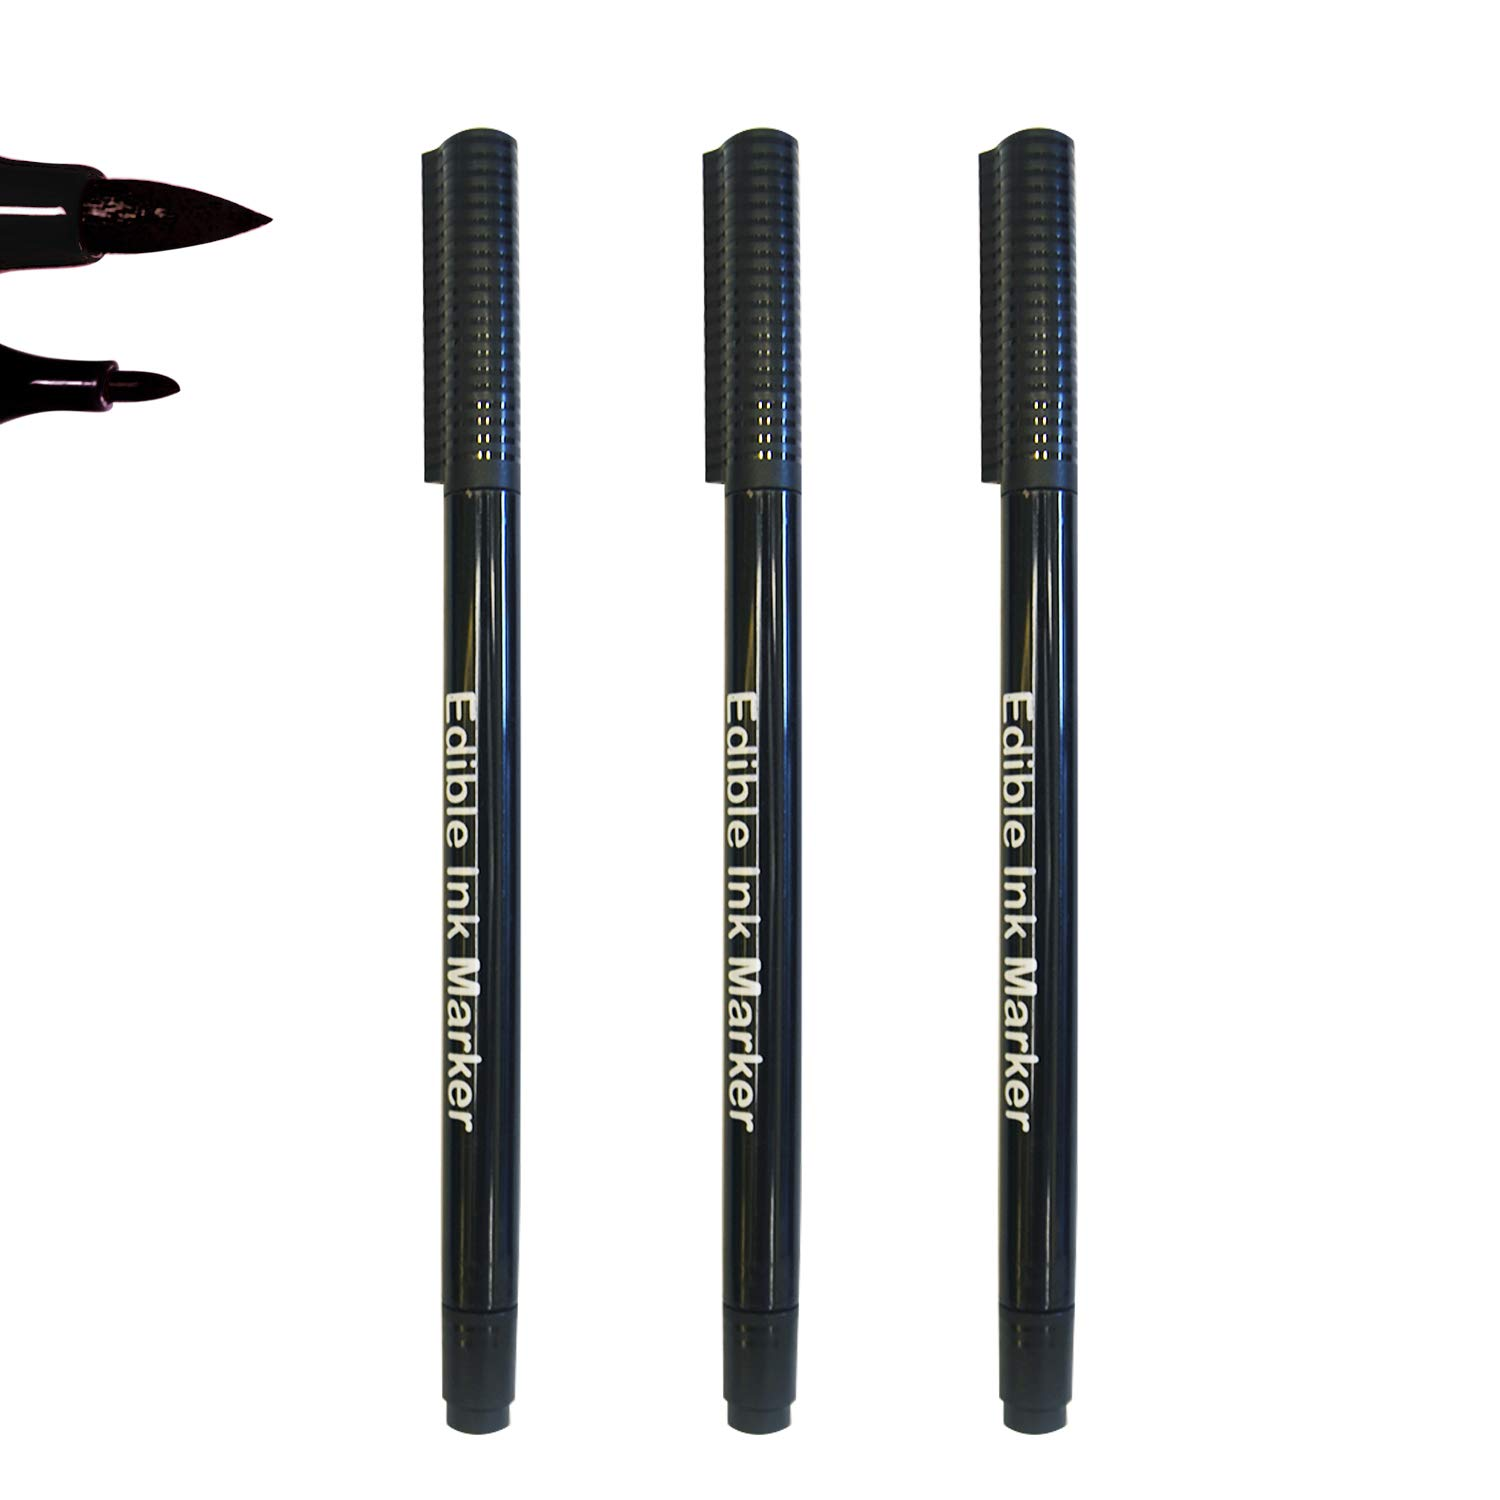 Dual Tips Food Coloring Pens,3PCS Black Color Food Grade and Edible Marker,Gourmet Writers for Decorating Fondant,Cakes, Cookies, Frosting, Easter Eggs, Thick Tip and Fine Tip, by Edibleink